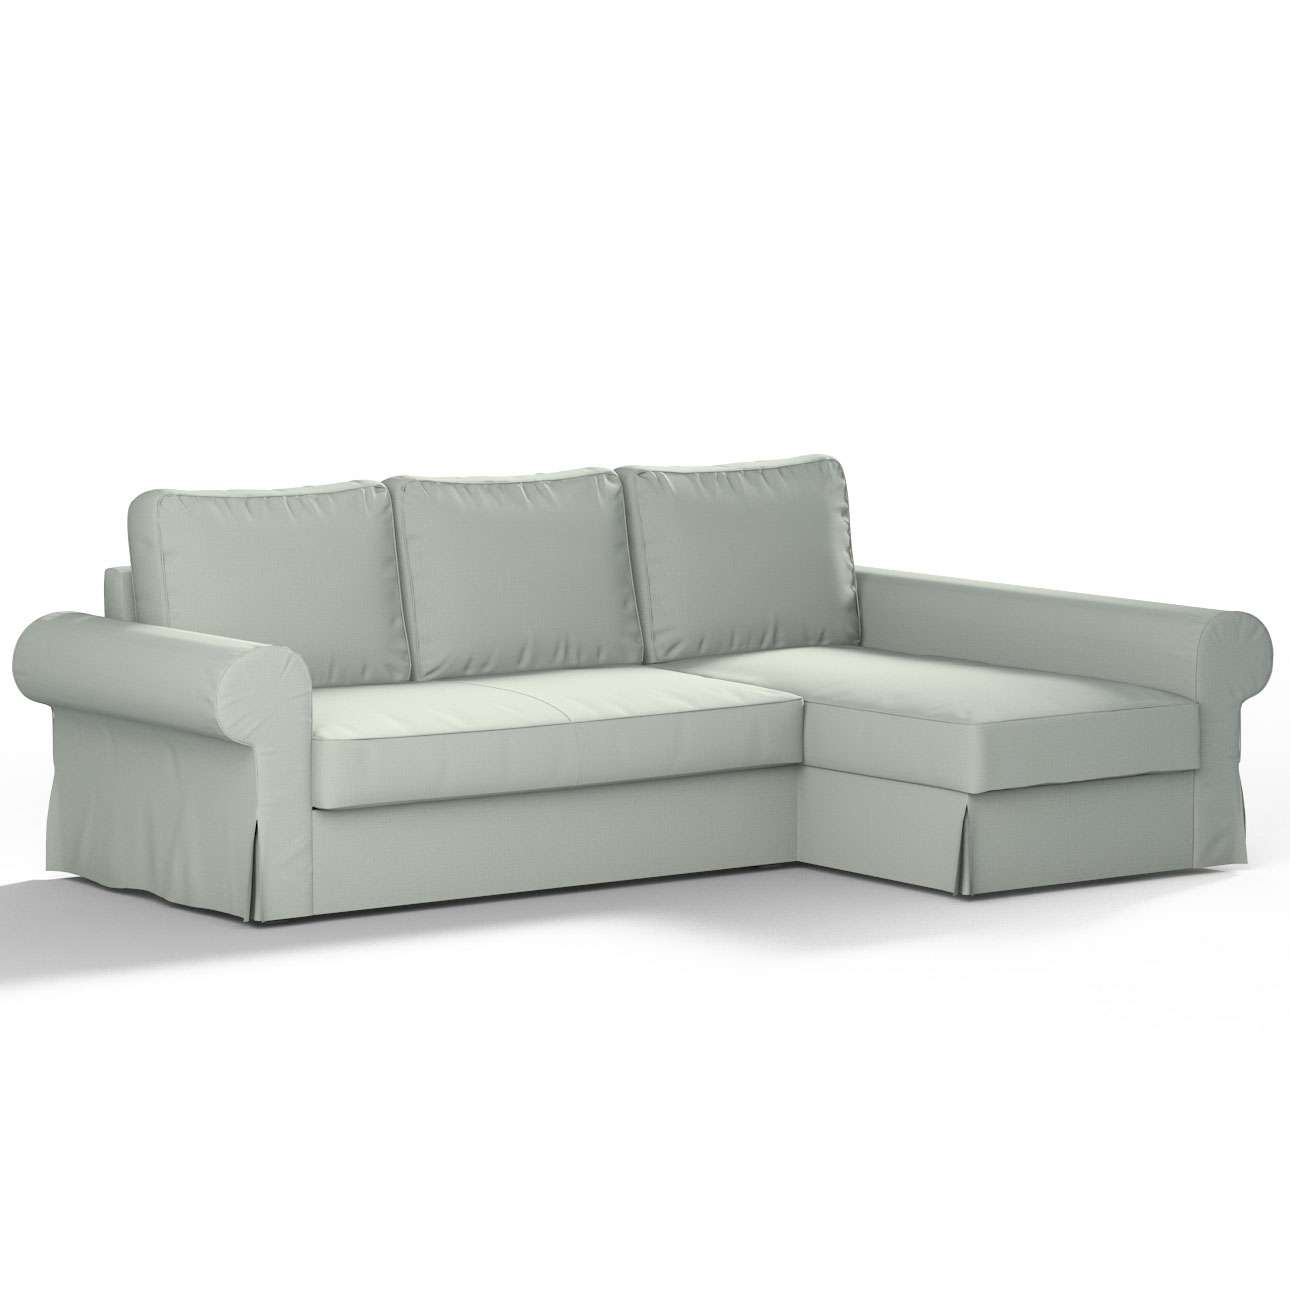 Magnificent Sofa Bed With Chaise Longue Backabro Uwap Interior Chair Design Uwaporg